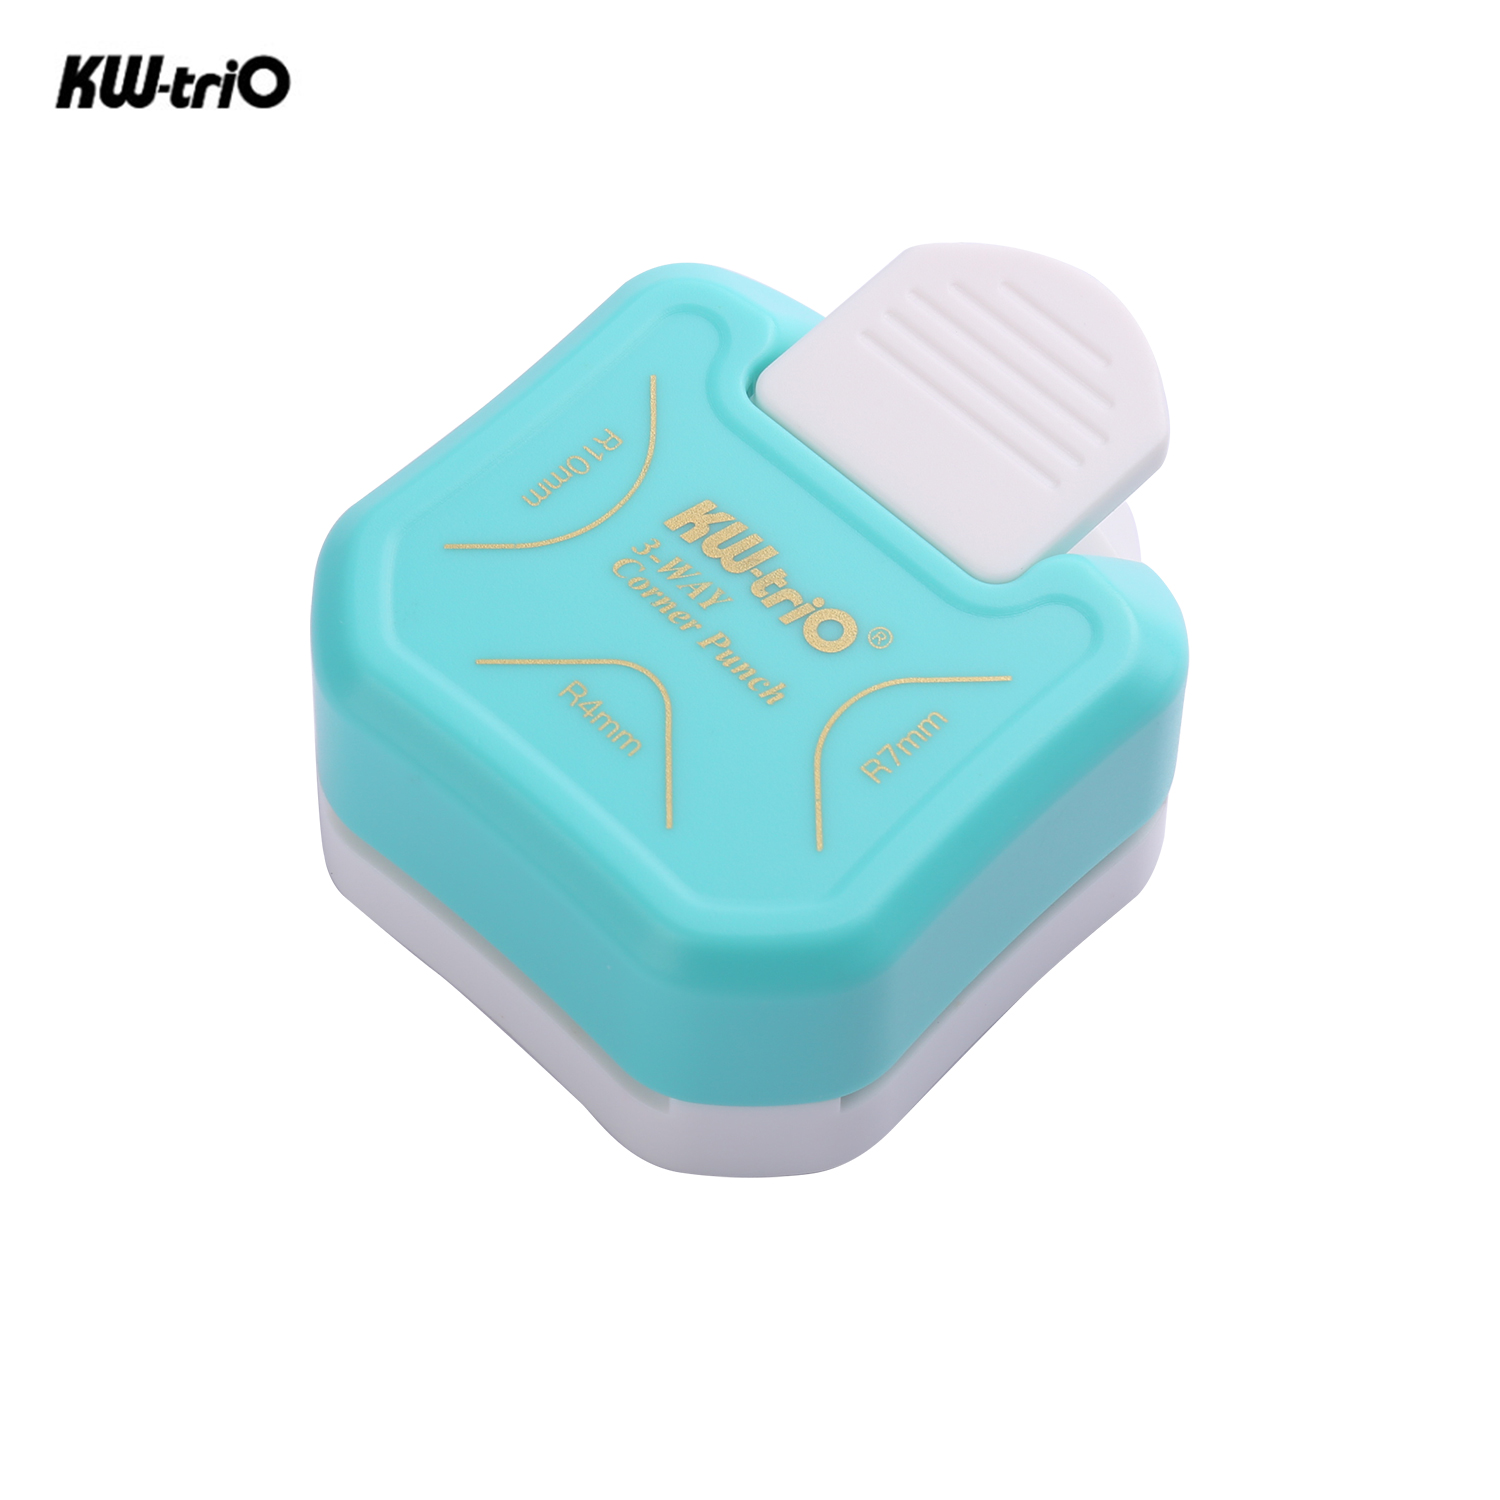 3-in-1 Mini corner trimmer Corner Rounder Punch R4/R7/R10mm Round Corner Trimmer Cutter for Card Photo Paper Laminating Pouches 1